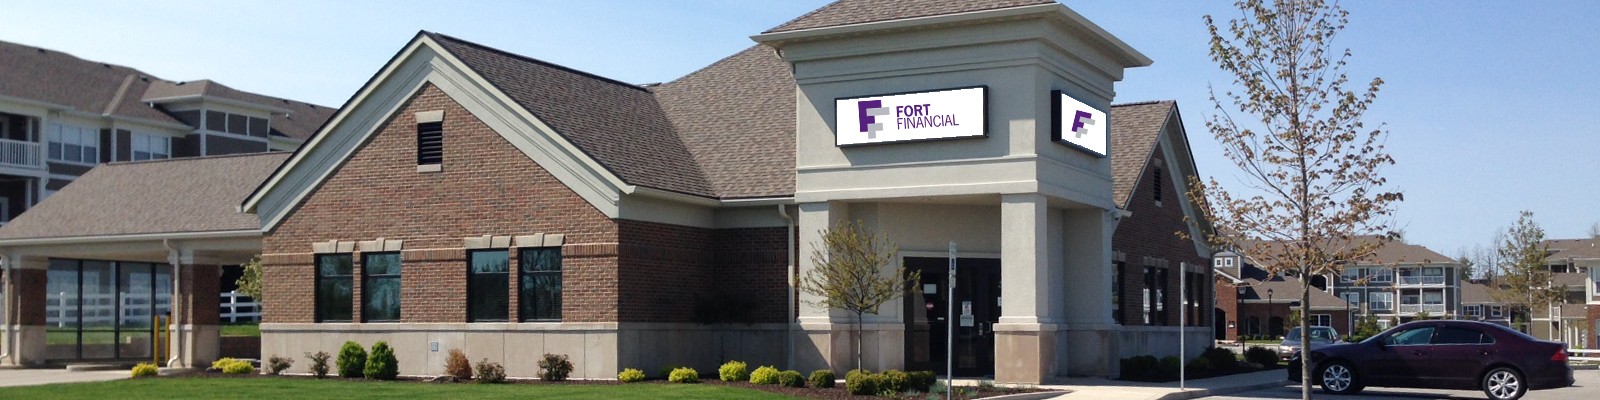 Fort Financial Credit Union branch